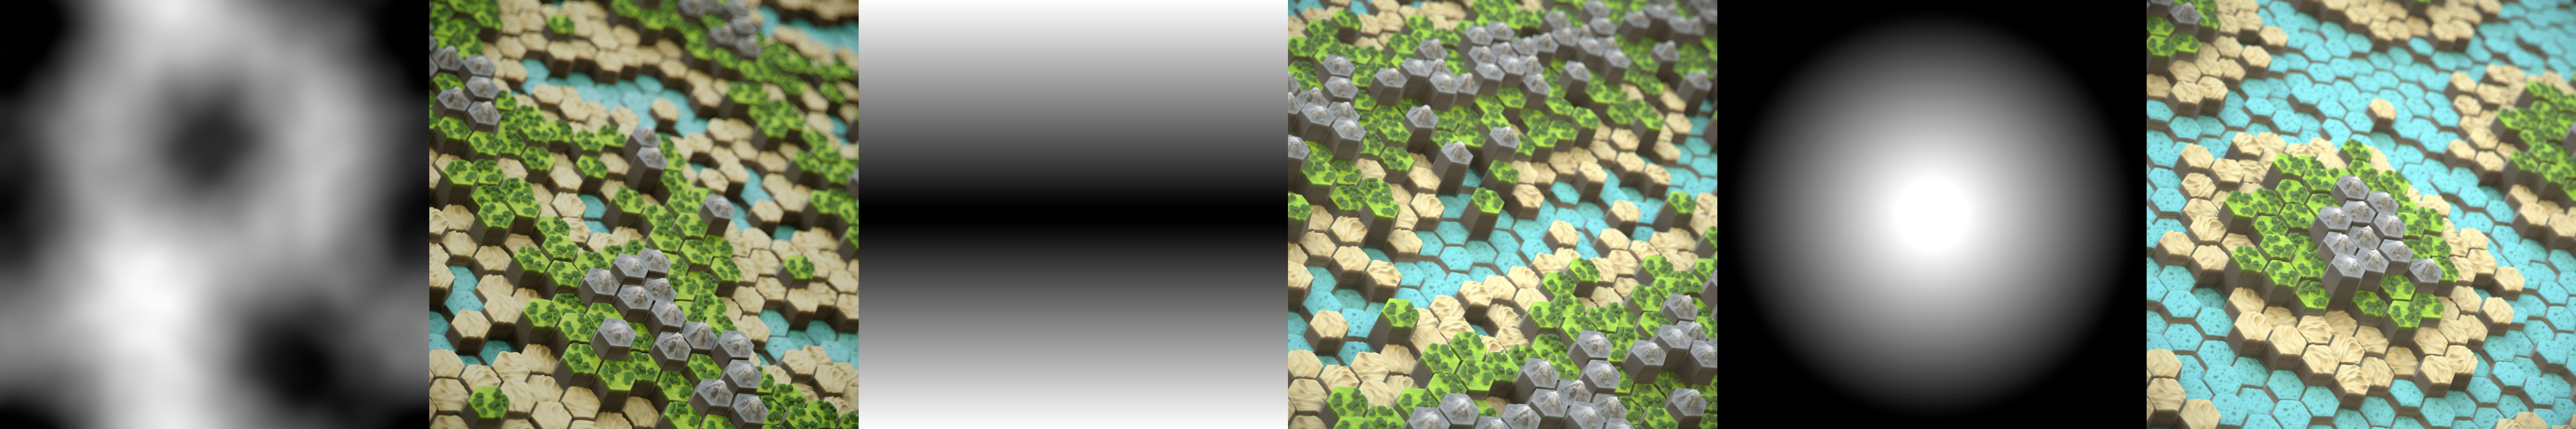 The biome Substance graph takes an arbitrary black and white input and converts it into a material. There are additional noises to break the shapes and create more interesting results.